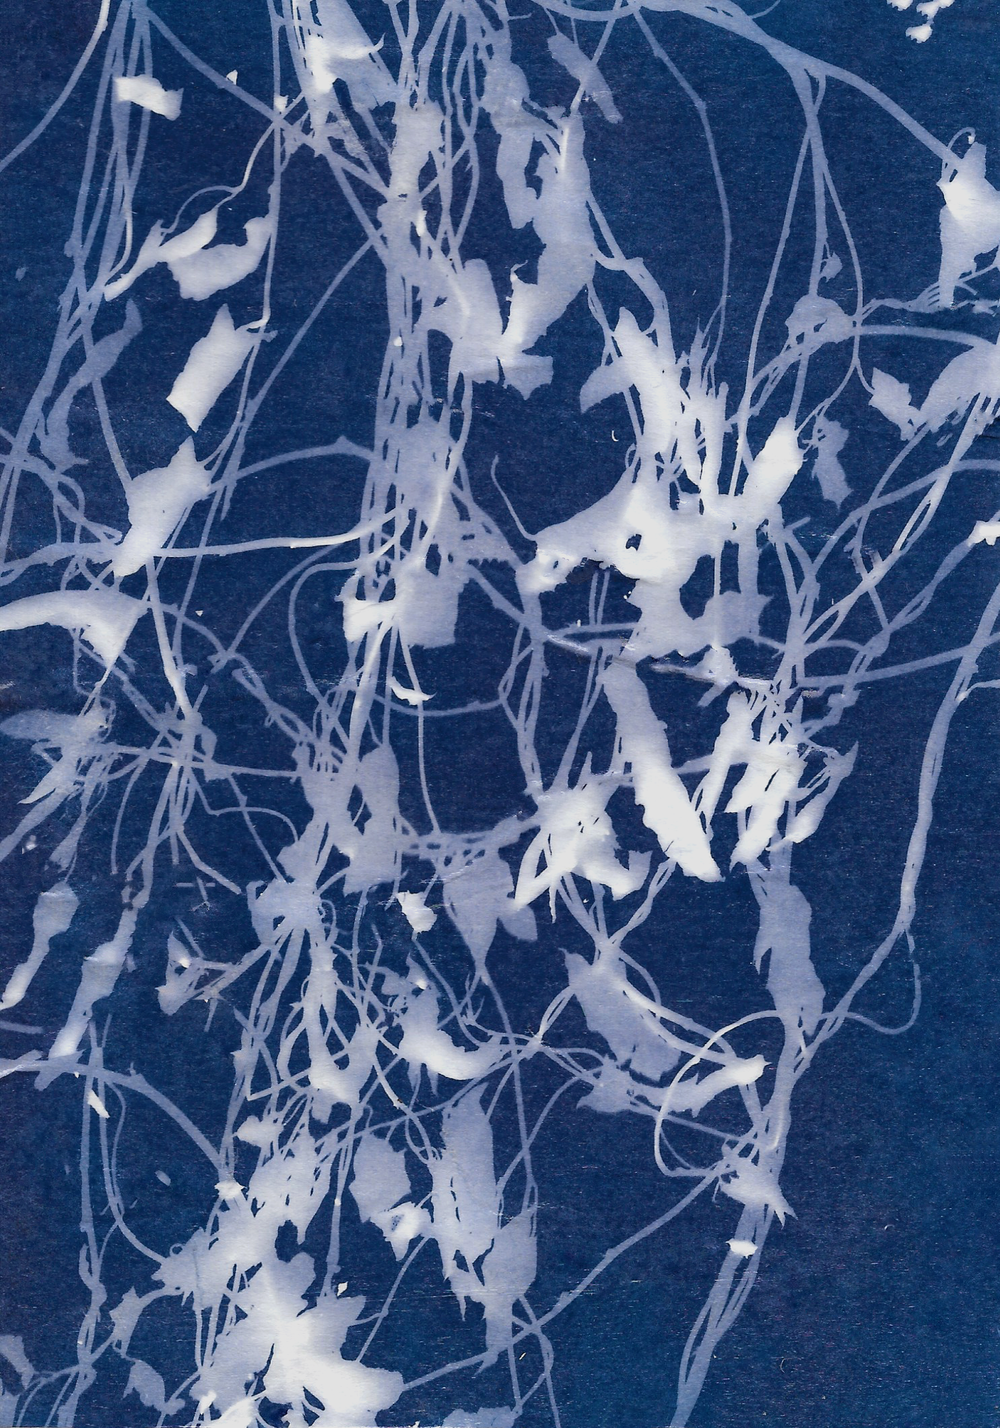 Winter Garden 1 || cyanotype || Rachel Loewens